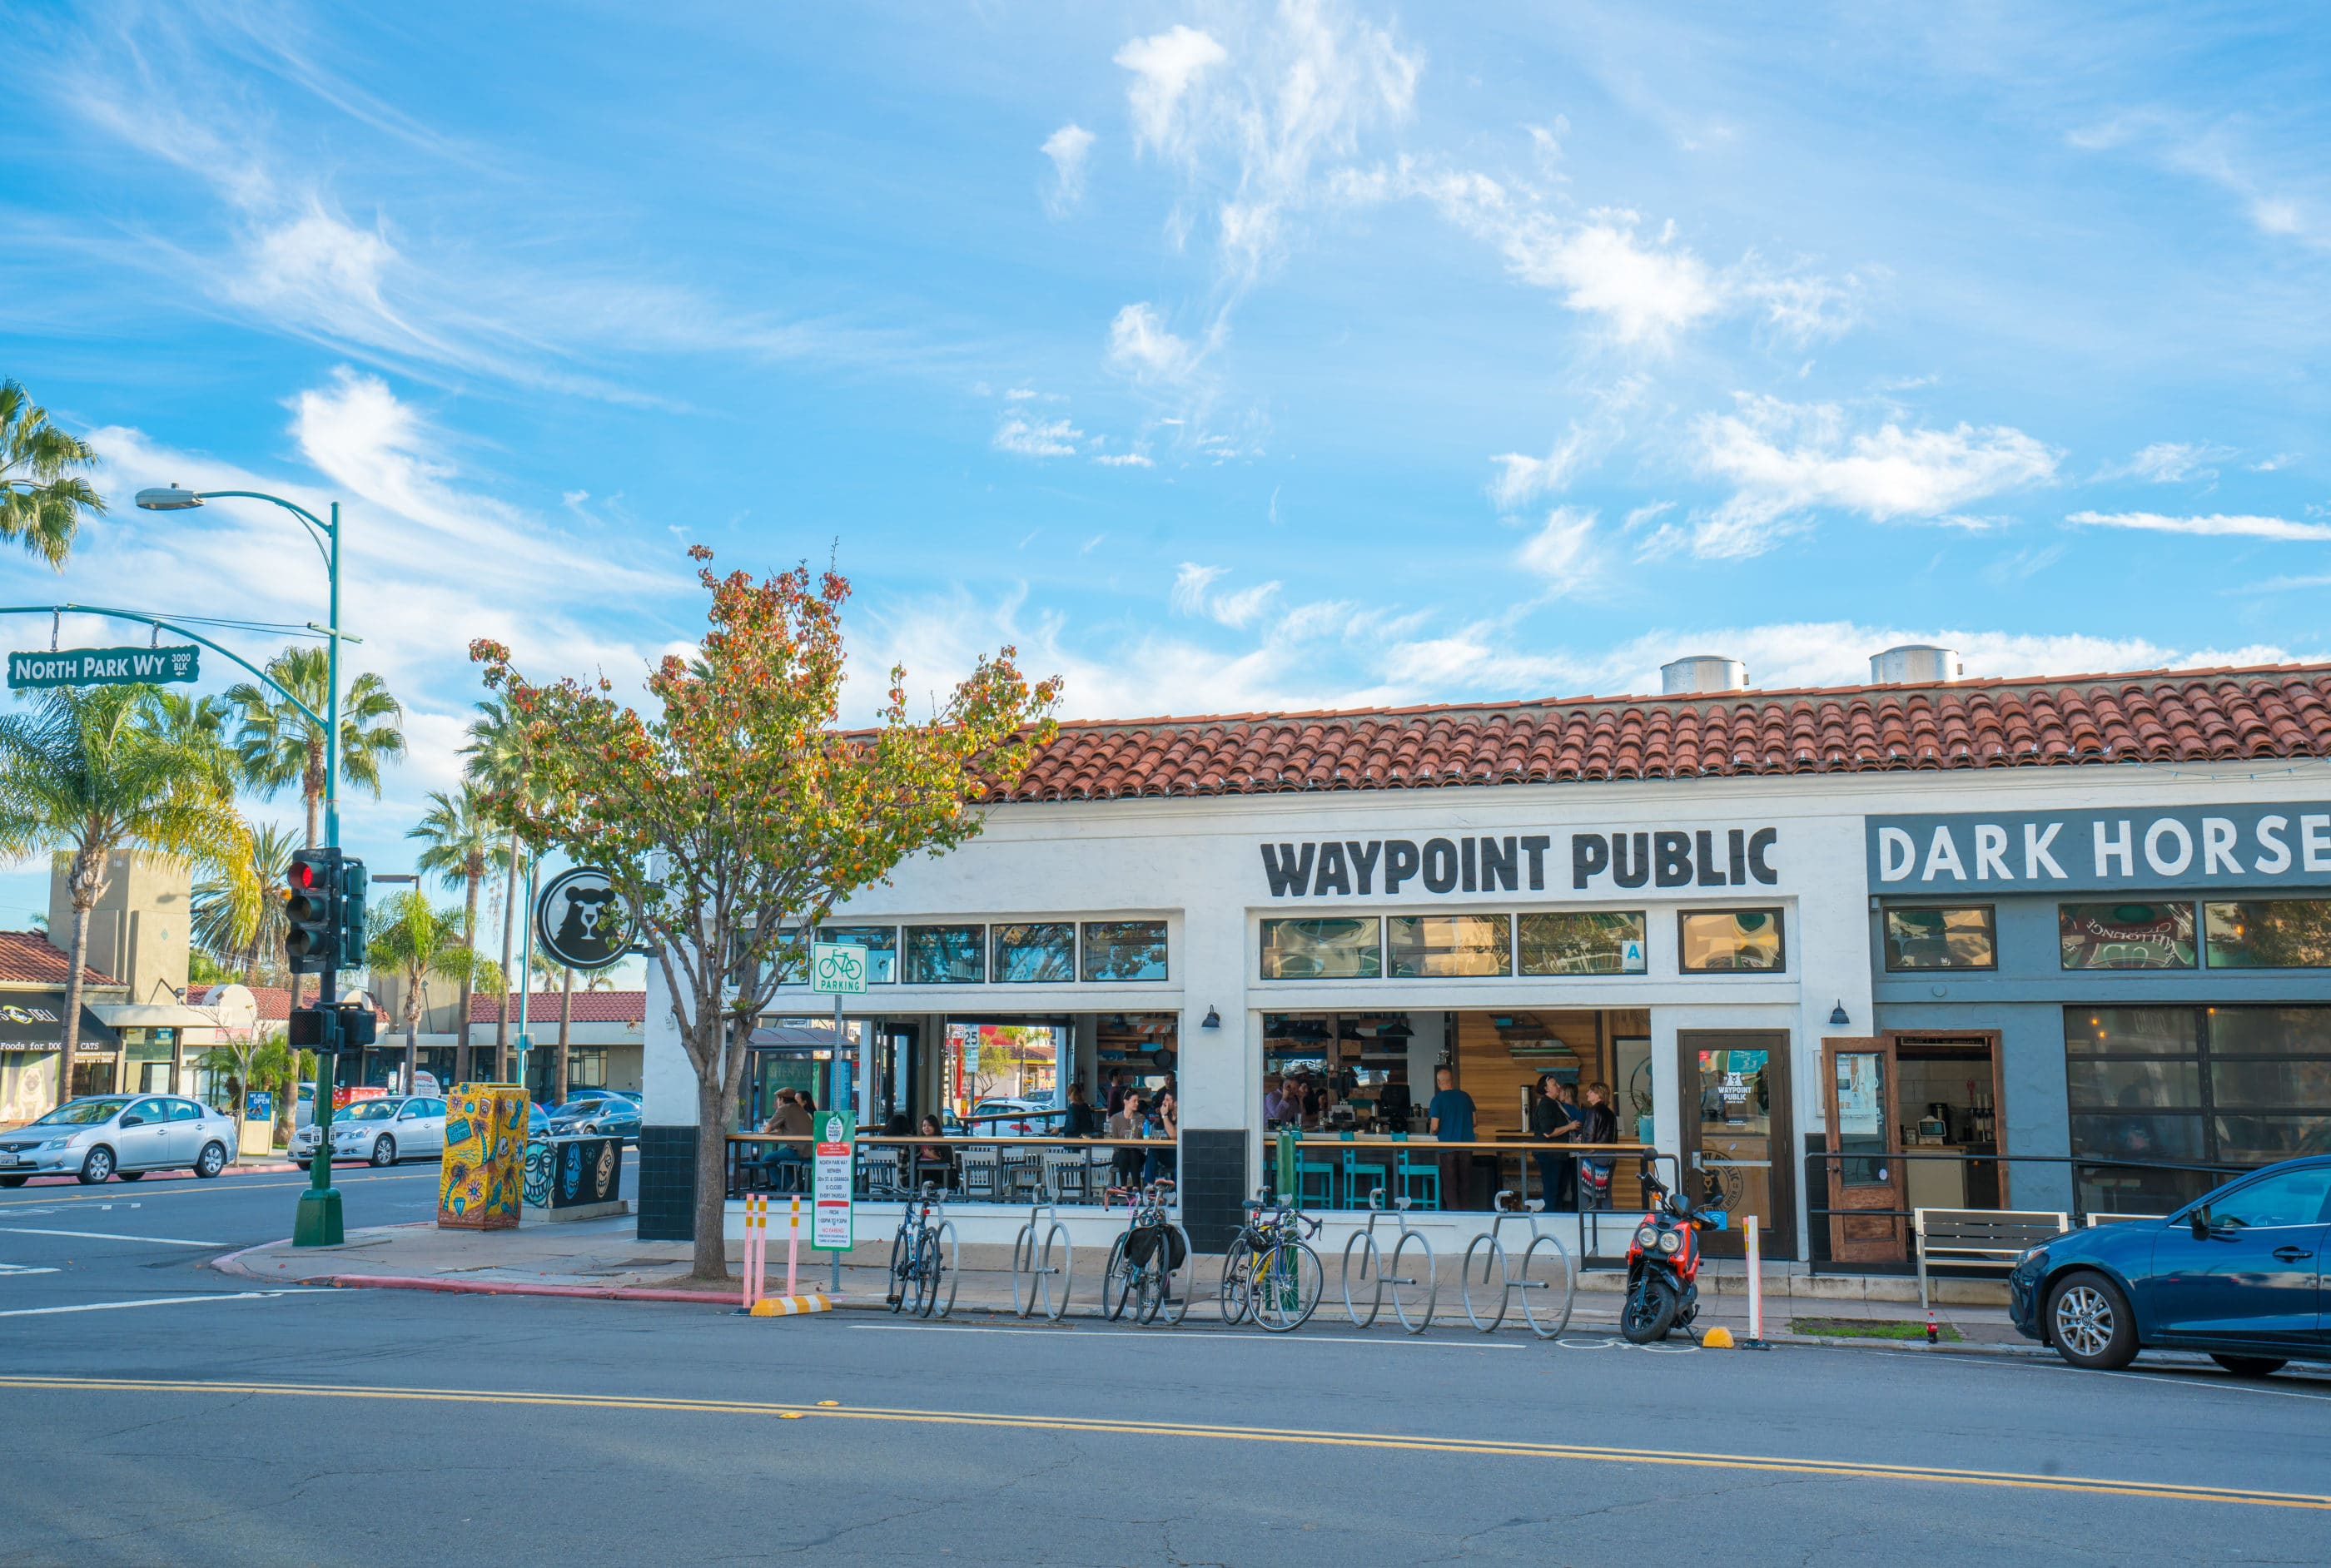 The exterior view of Waypoint Public from across the street.